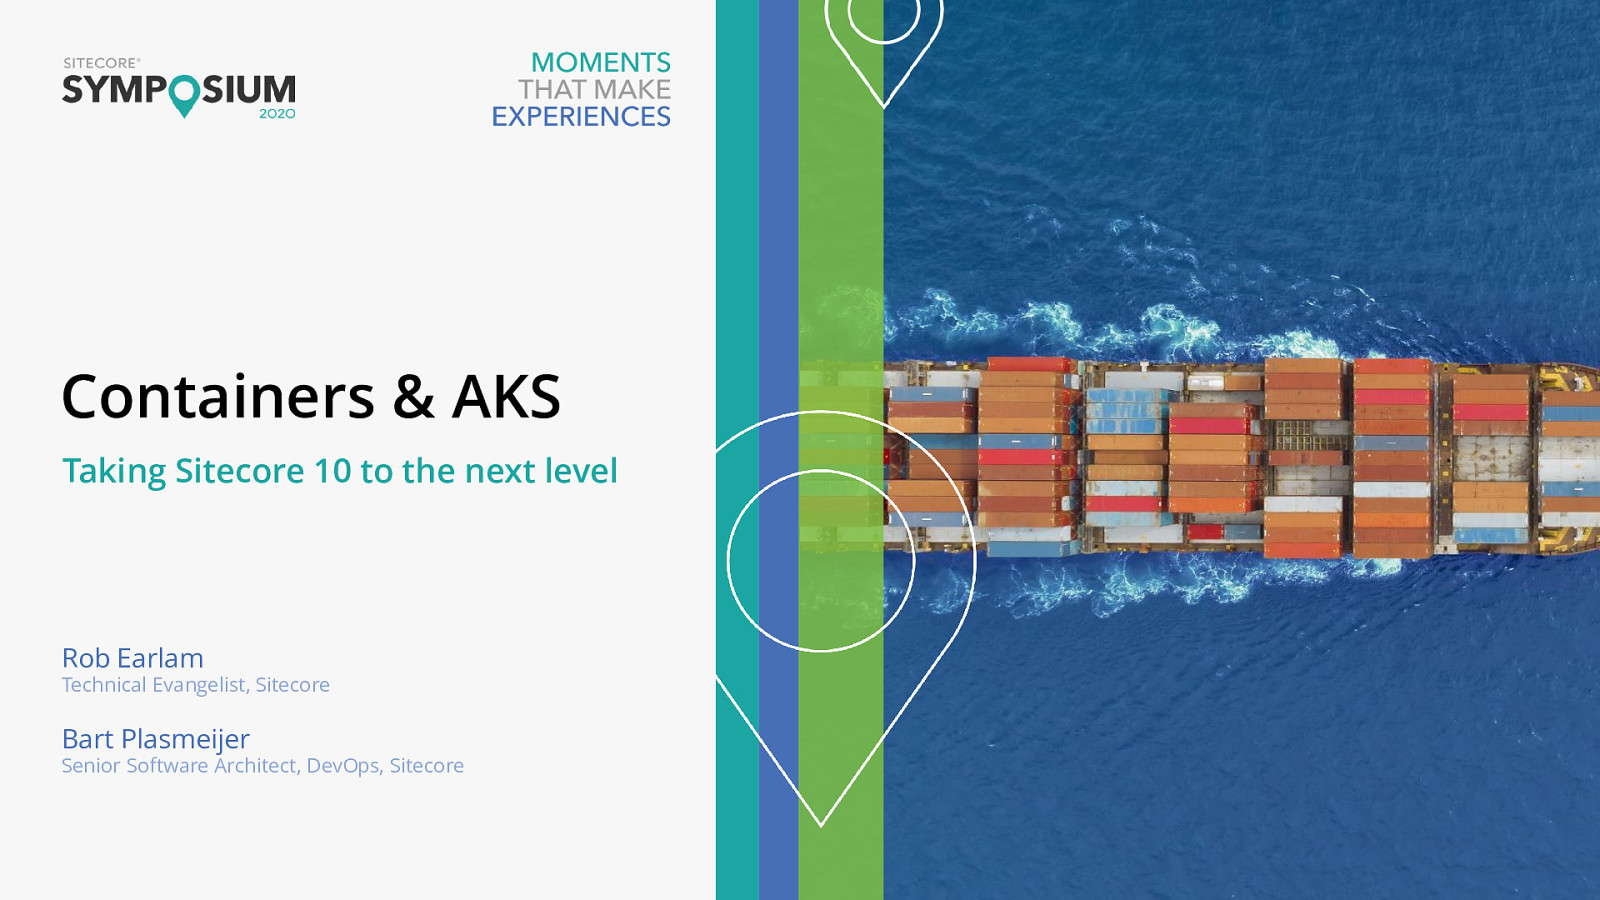 Containers & AKS - Taking Sitecore 10 to the next level